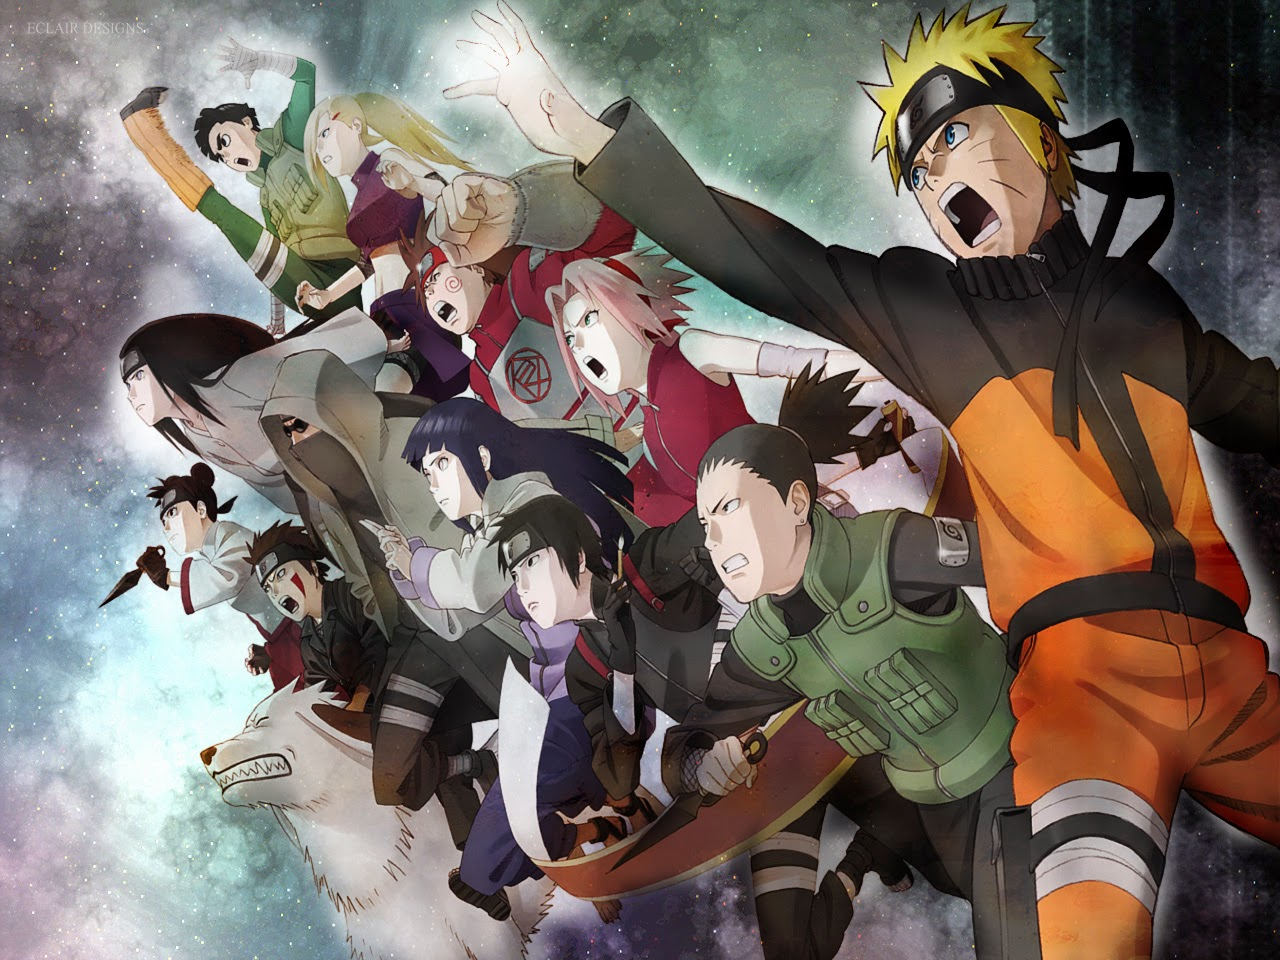 Naruto Shippuden 404 1 Cool Hd Wallpaper Animewp Com